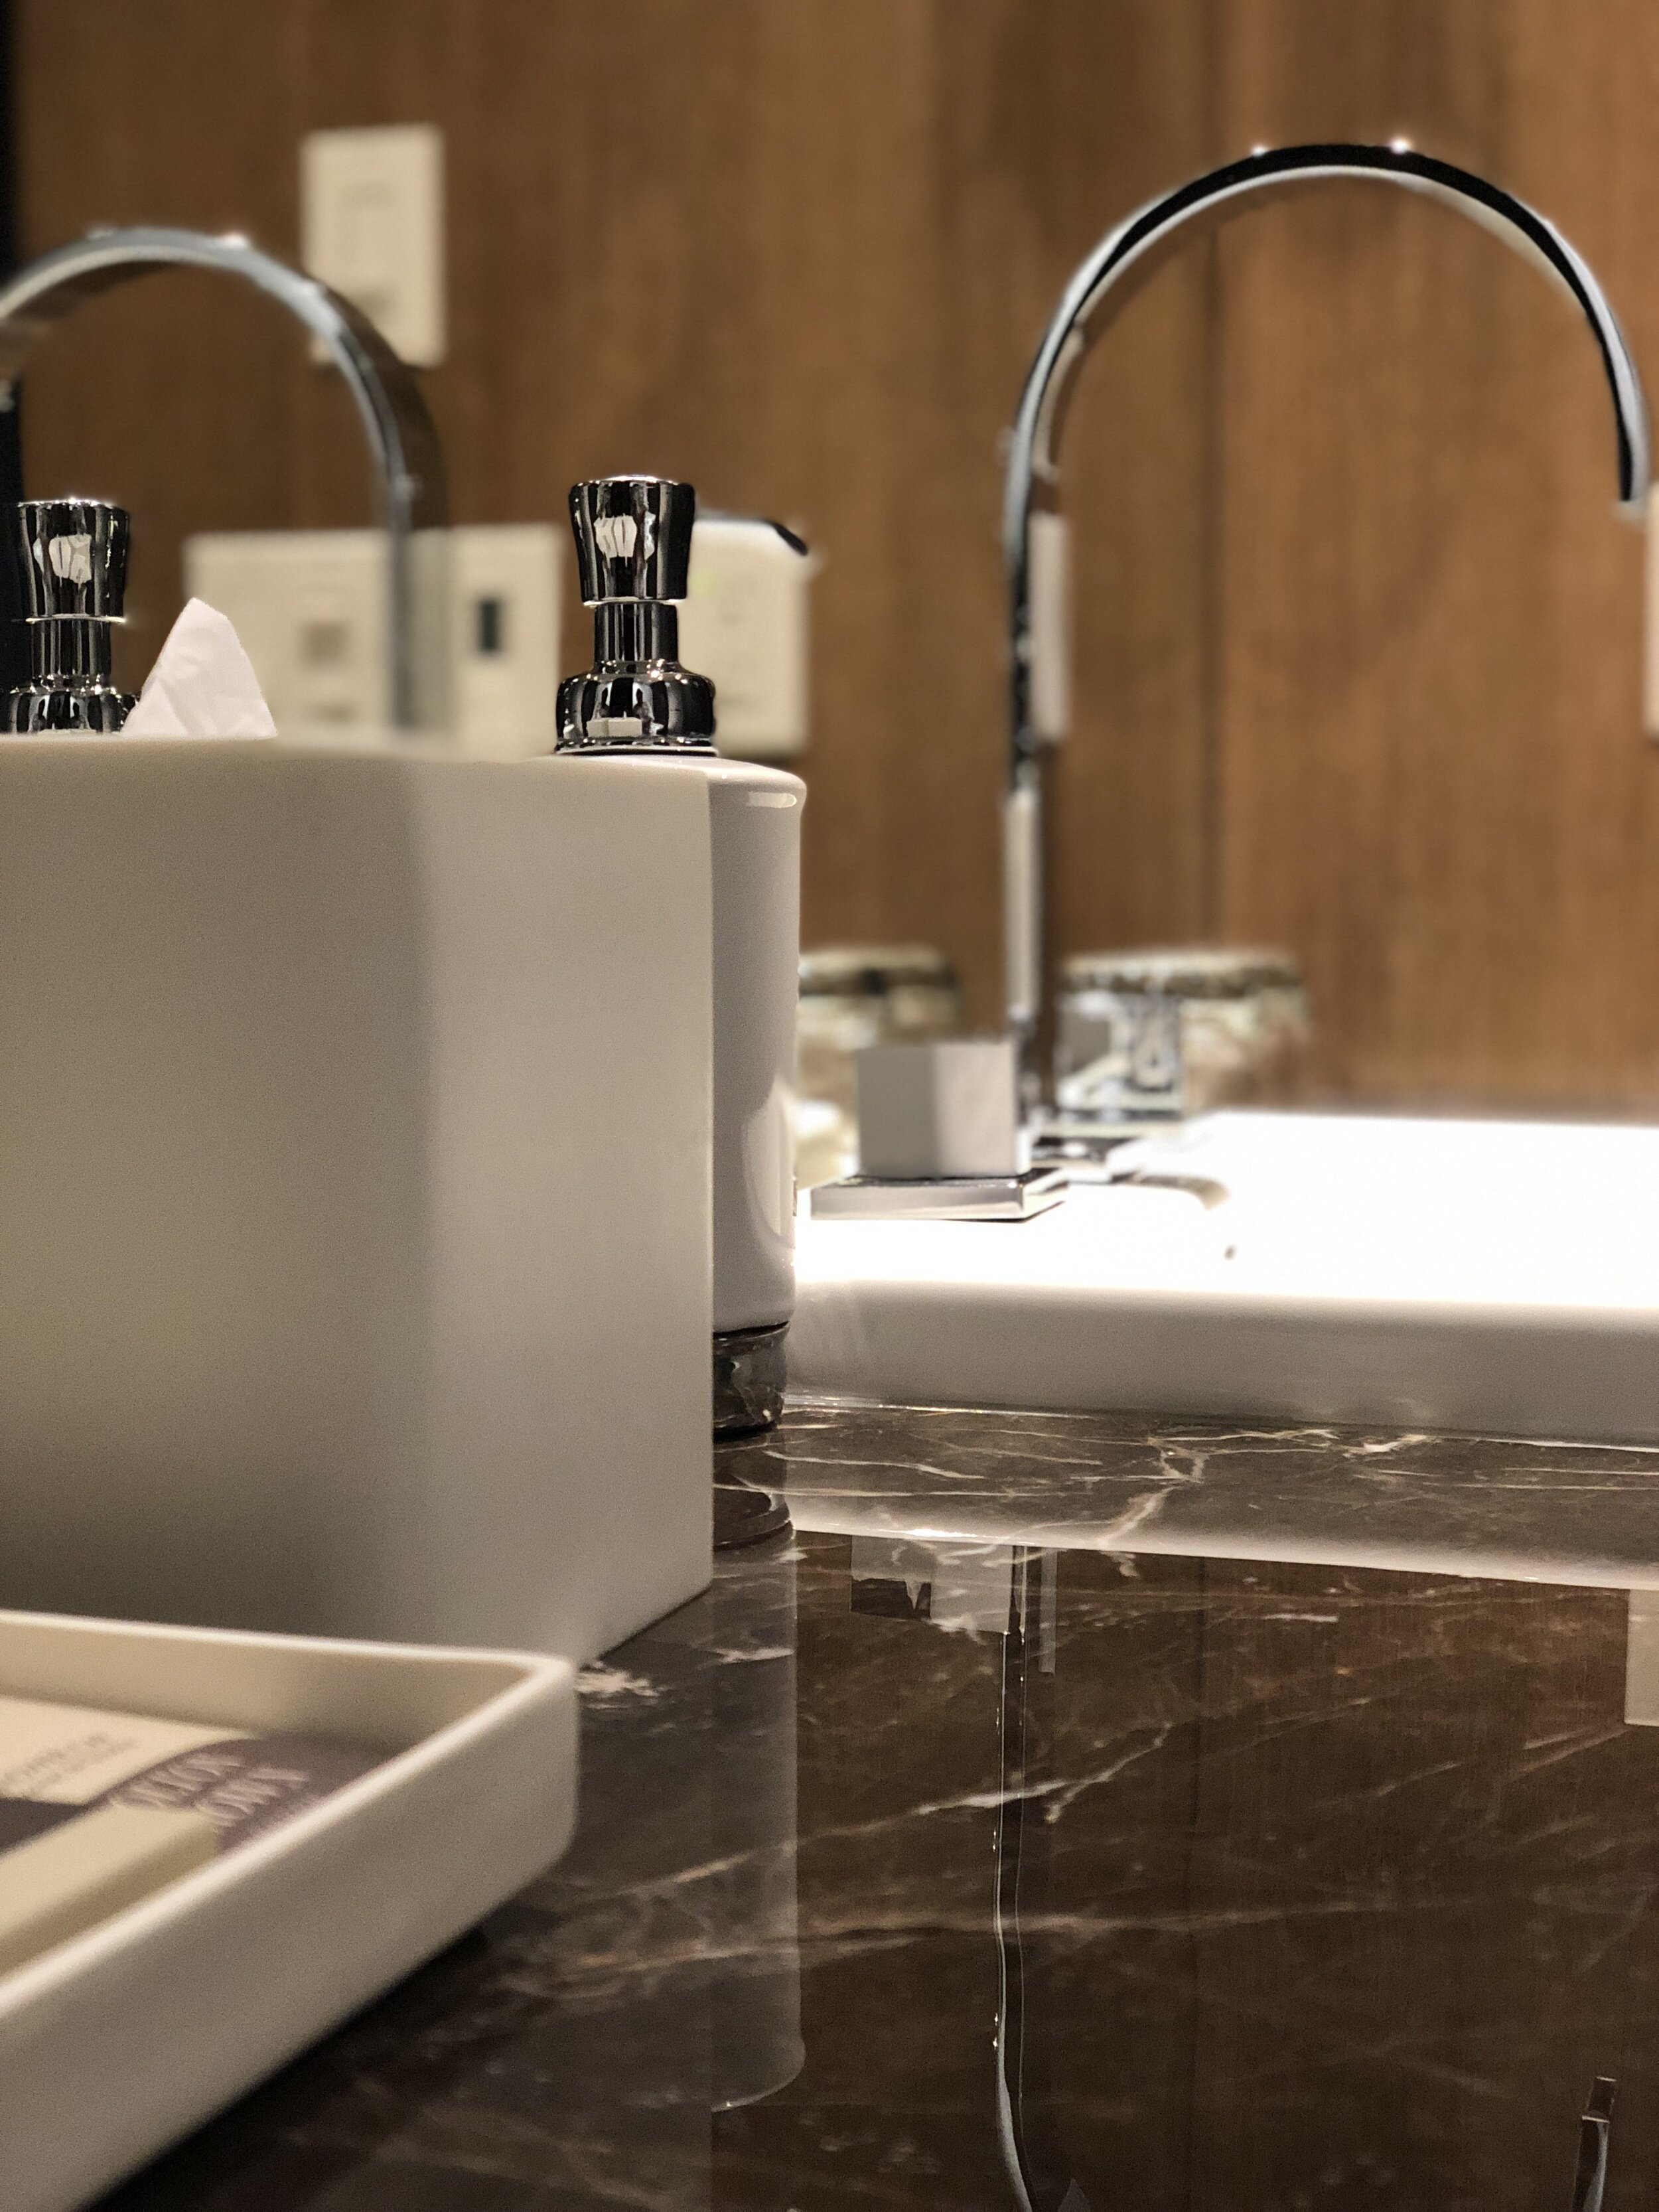 Customer Satisfaction - The end result of our efforts must be a satisfied Customer. Our reputation is the key to AZ New Bath's longevity in the remodeling industry and will remain the key to future successes.